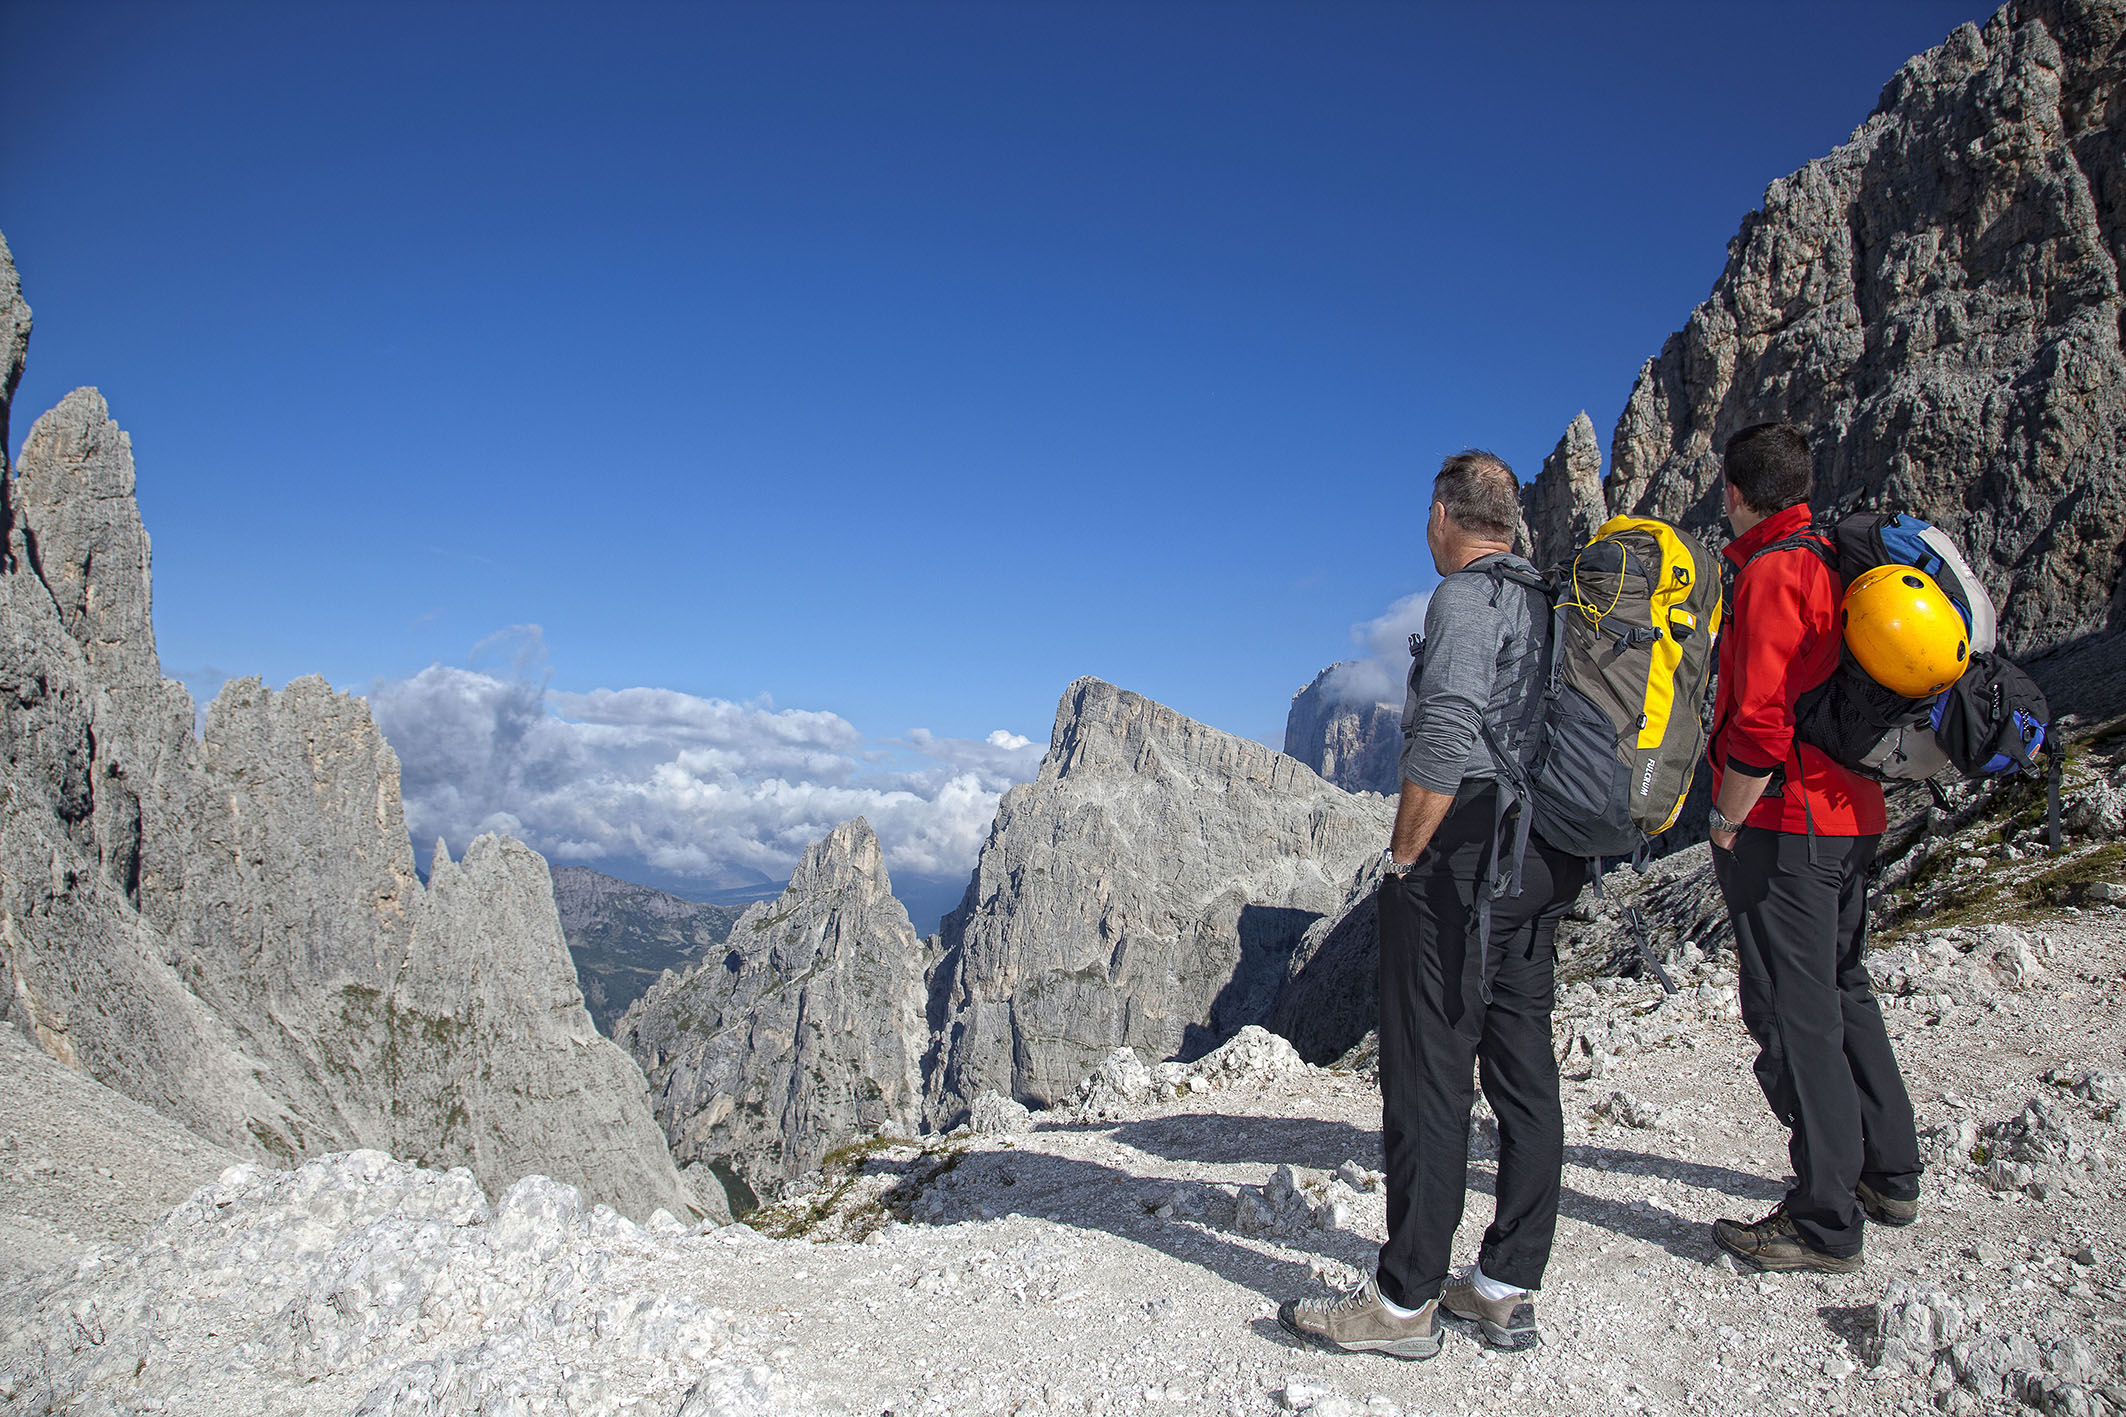 Fotocredit: Photo Library Pictures of Trentino Sviluppo SpA (Thilo Brunner)